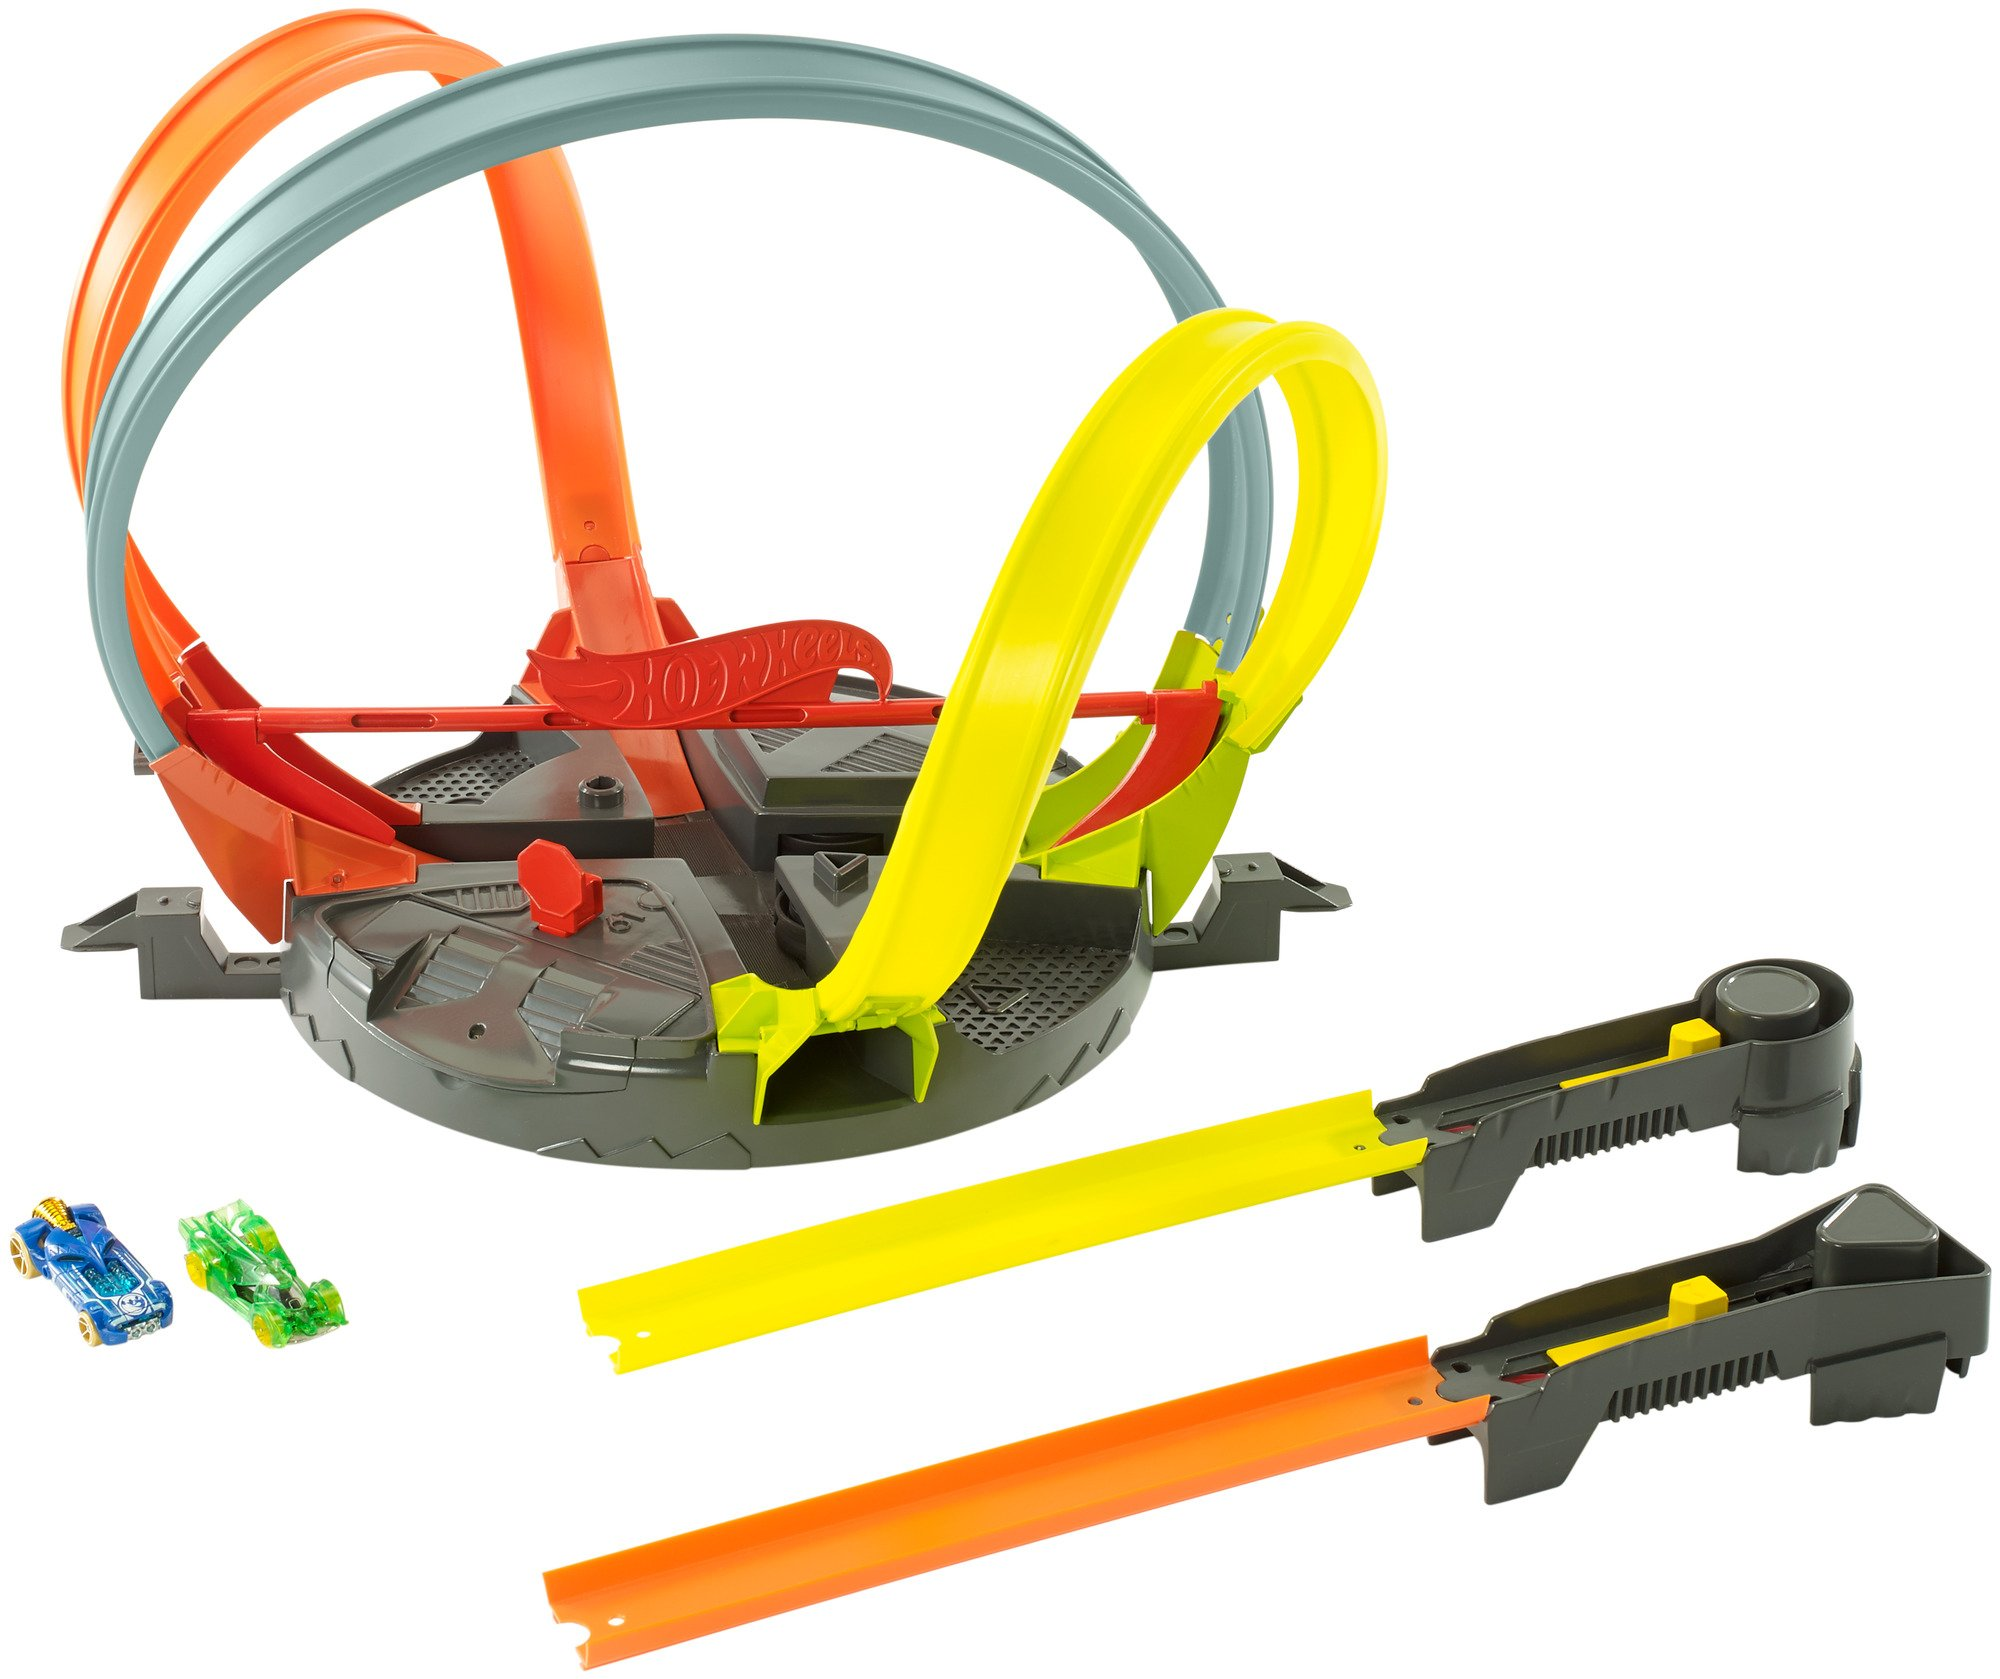 Hot Wheels Roto Revolution Track Playset by Hot Wheels (Image #14)